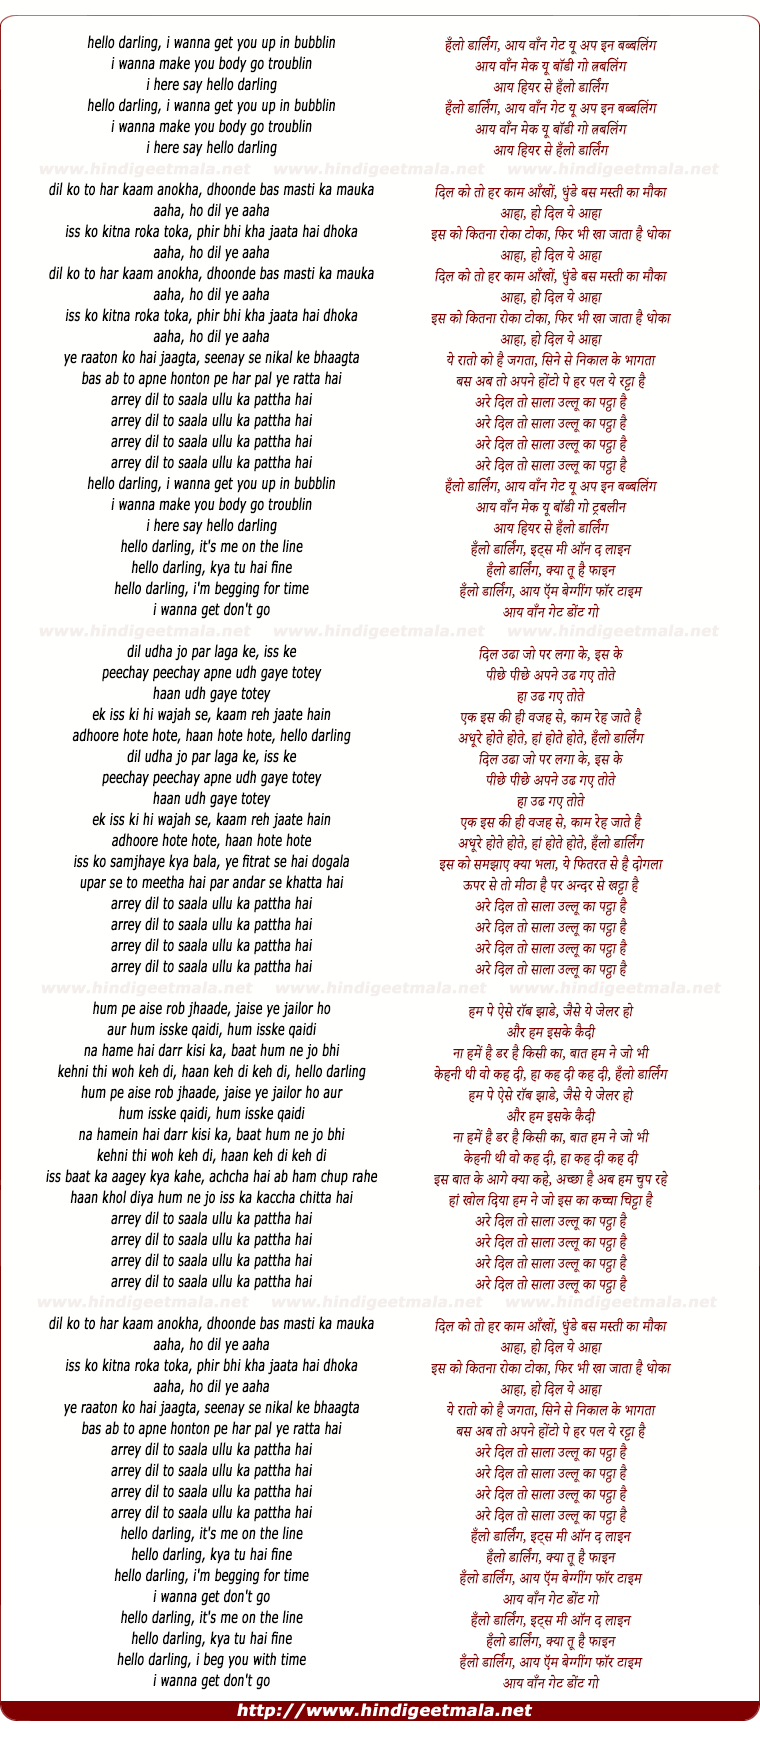 lyrics of song Dil to Saala Ullu Ka Pattha Hai